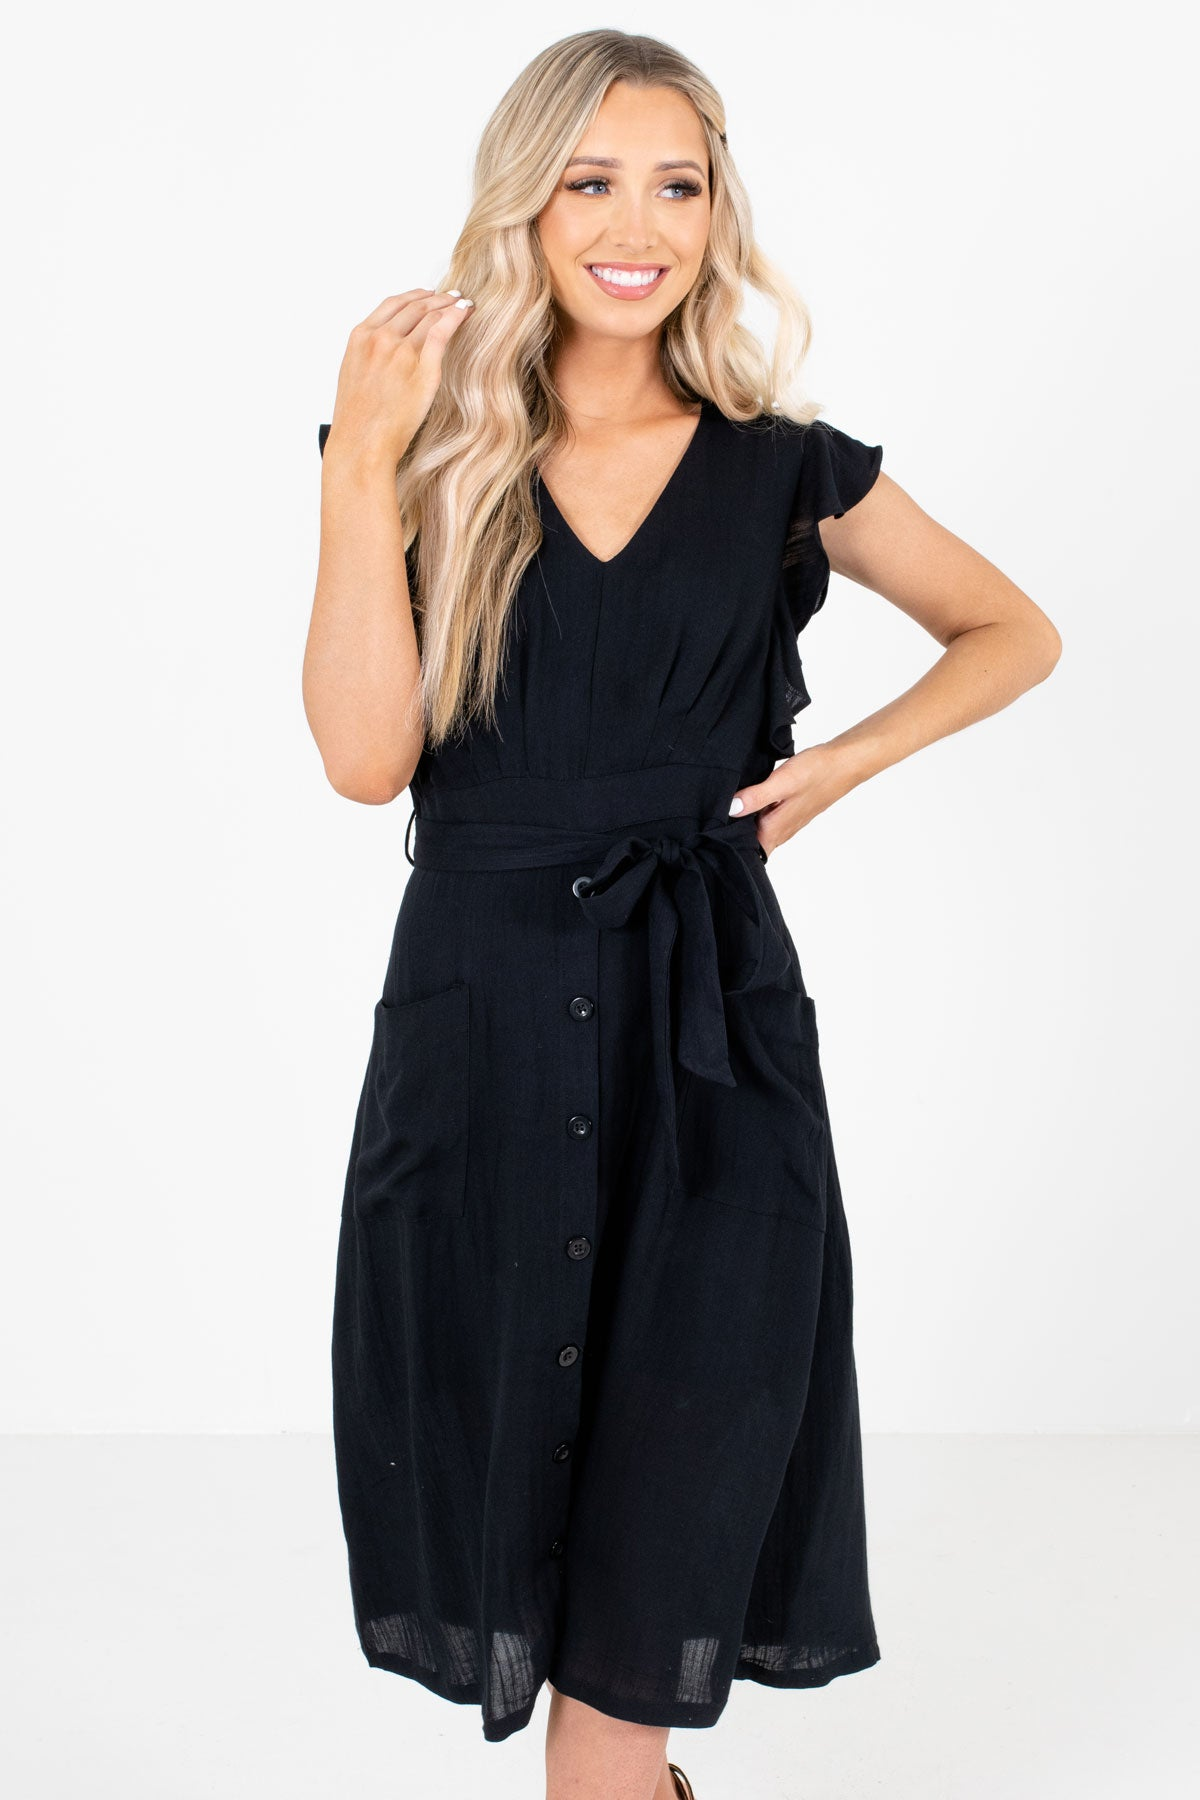 Black Decorative Button Boutique Midi Dresses for Women